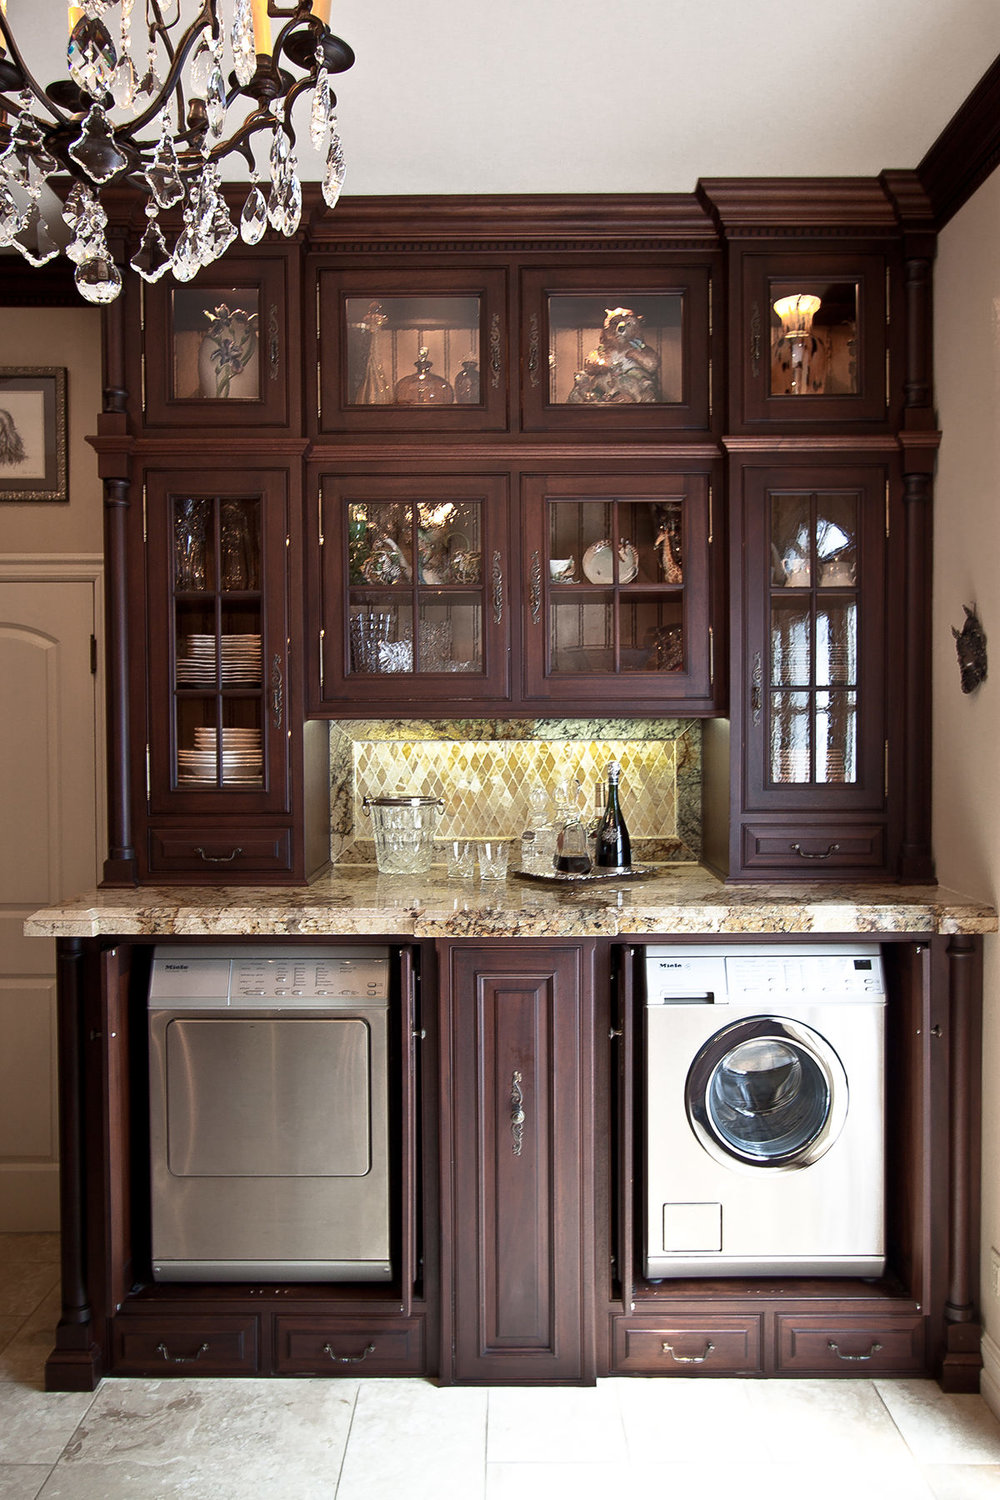 pasadena-california-kitchen-remodel-washer-dryer-located-in-bar-interior-design-montgomery-home.jpg